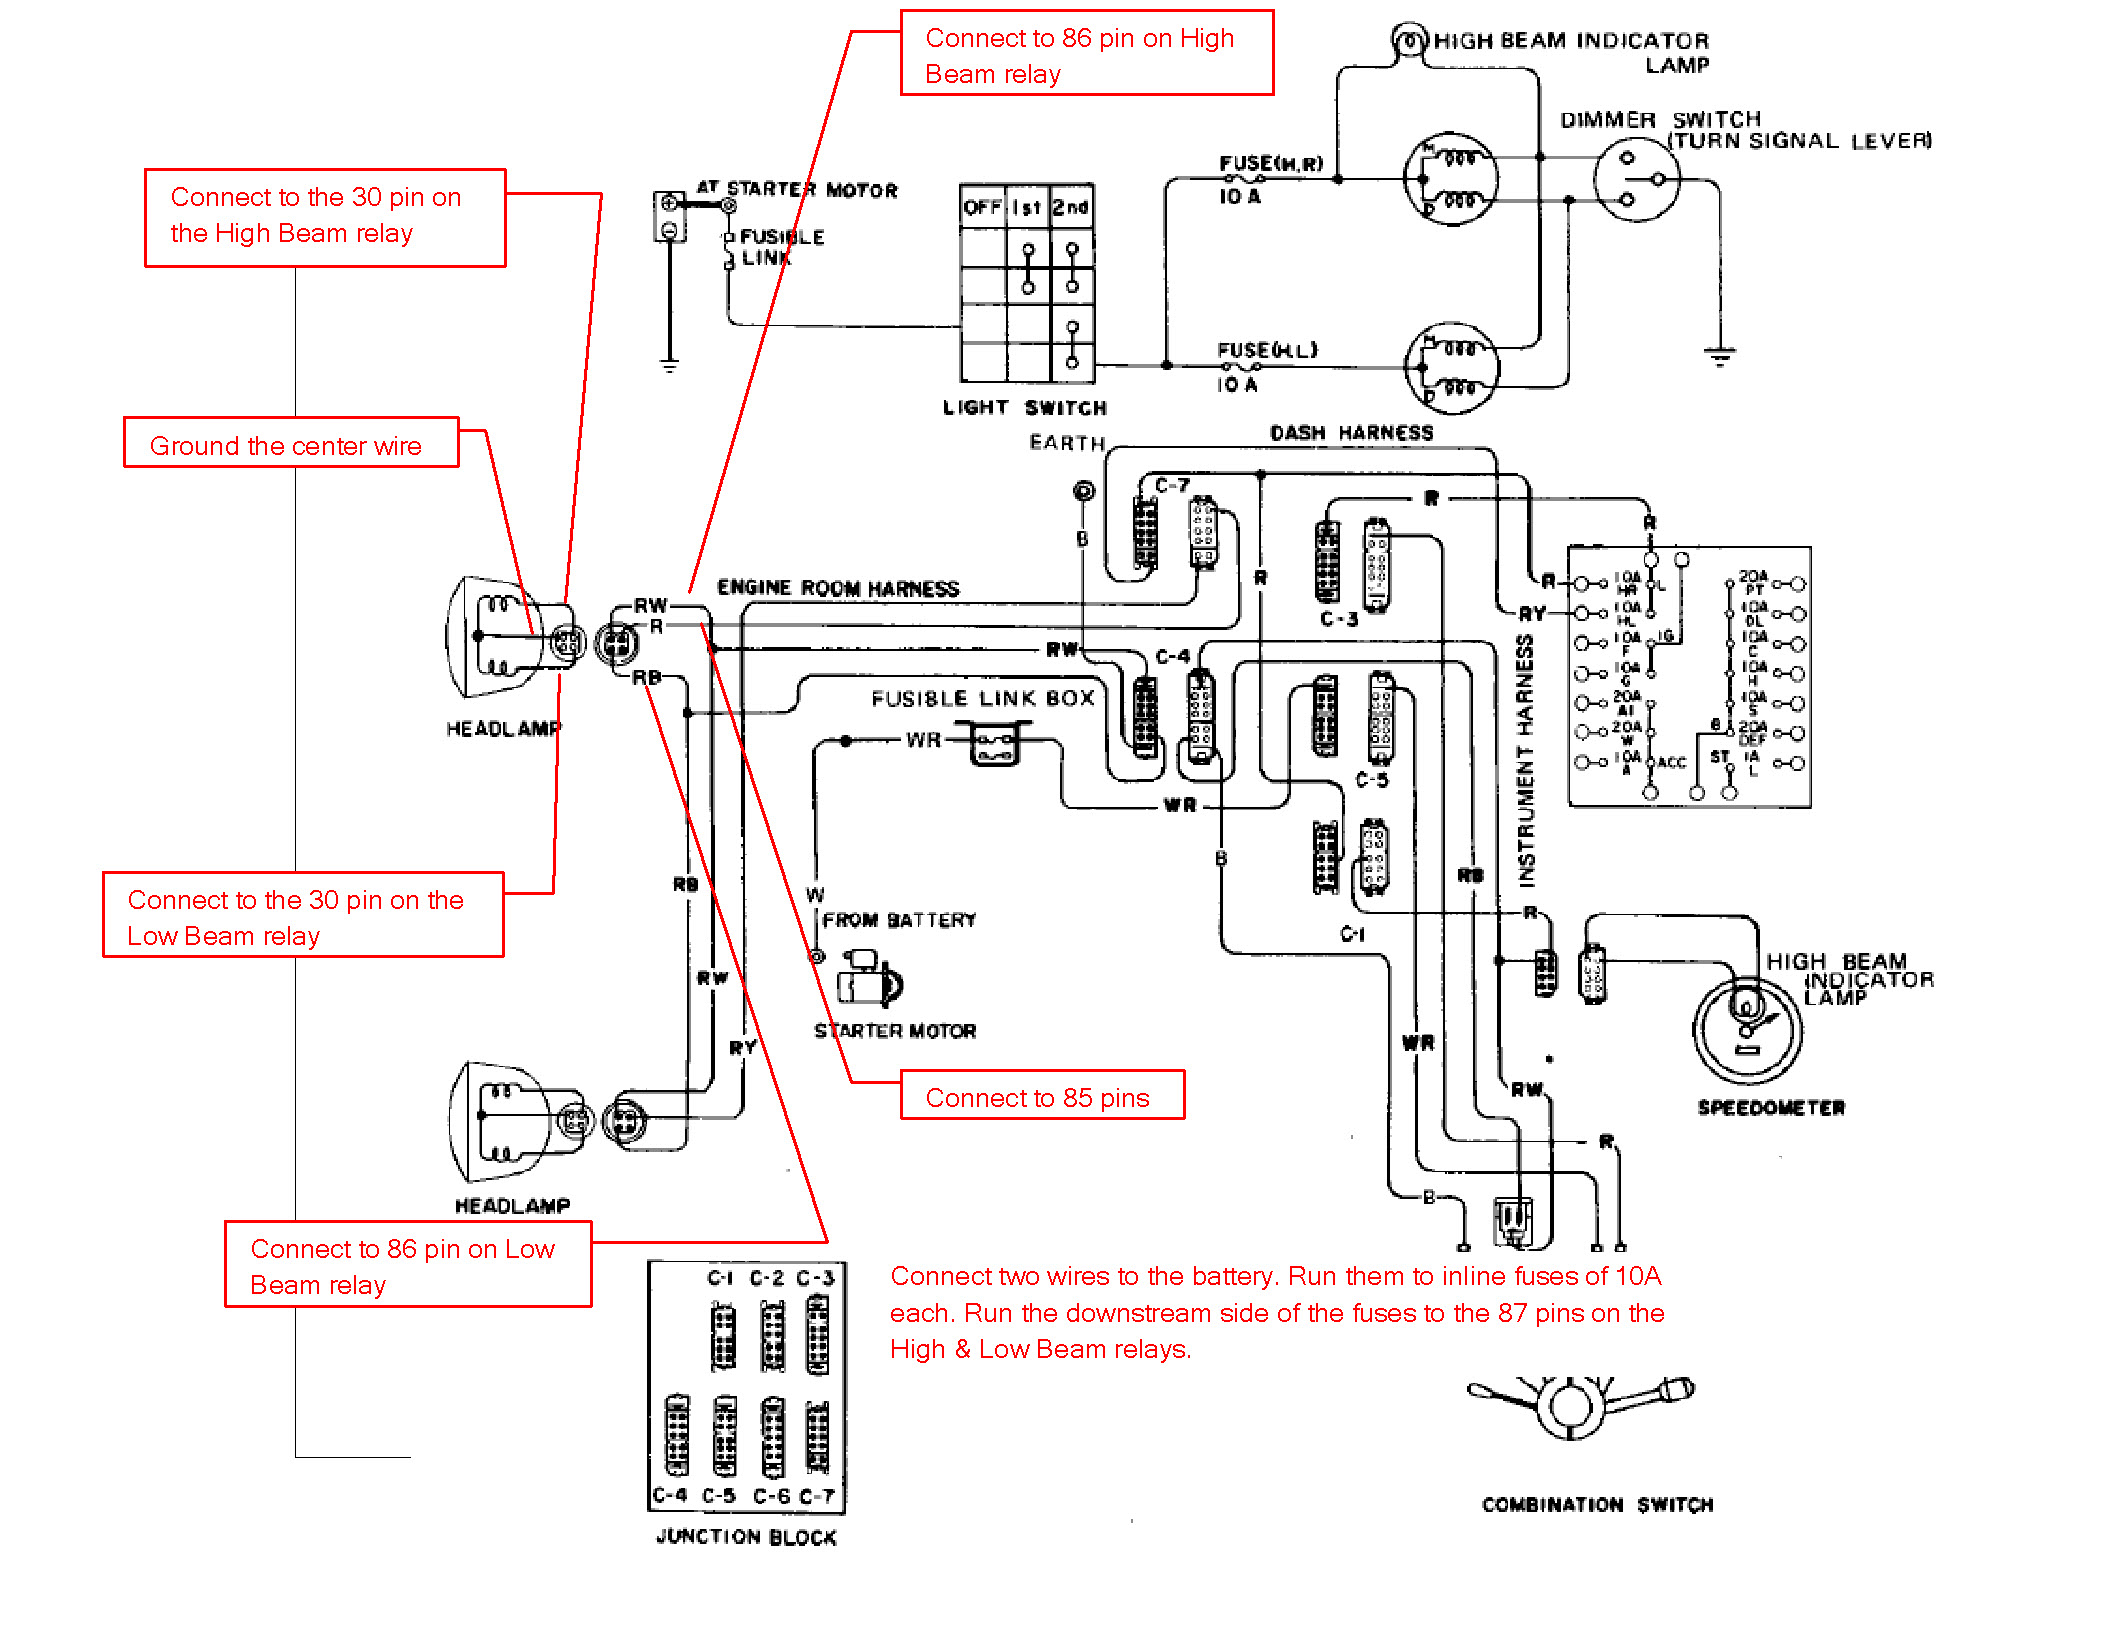 combination switch wiring diagram 280zx